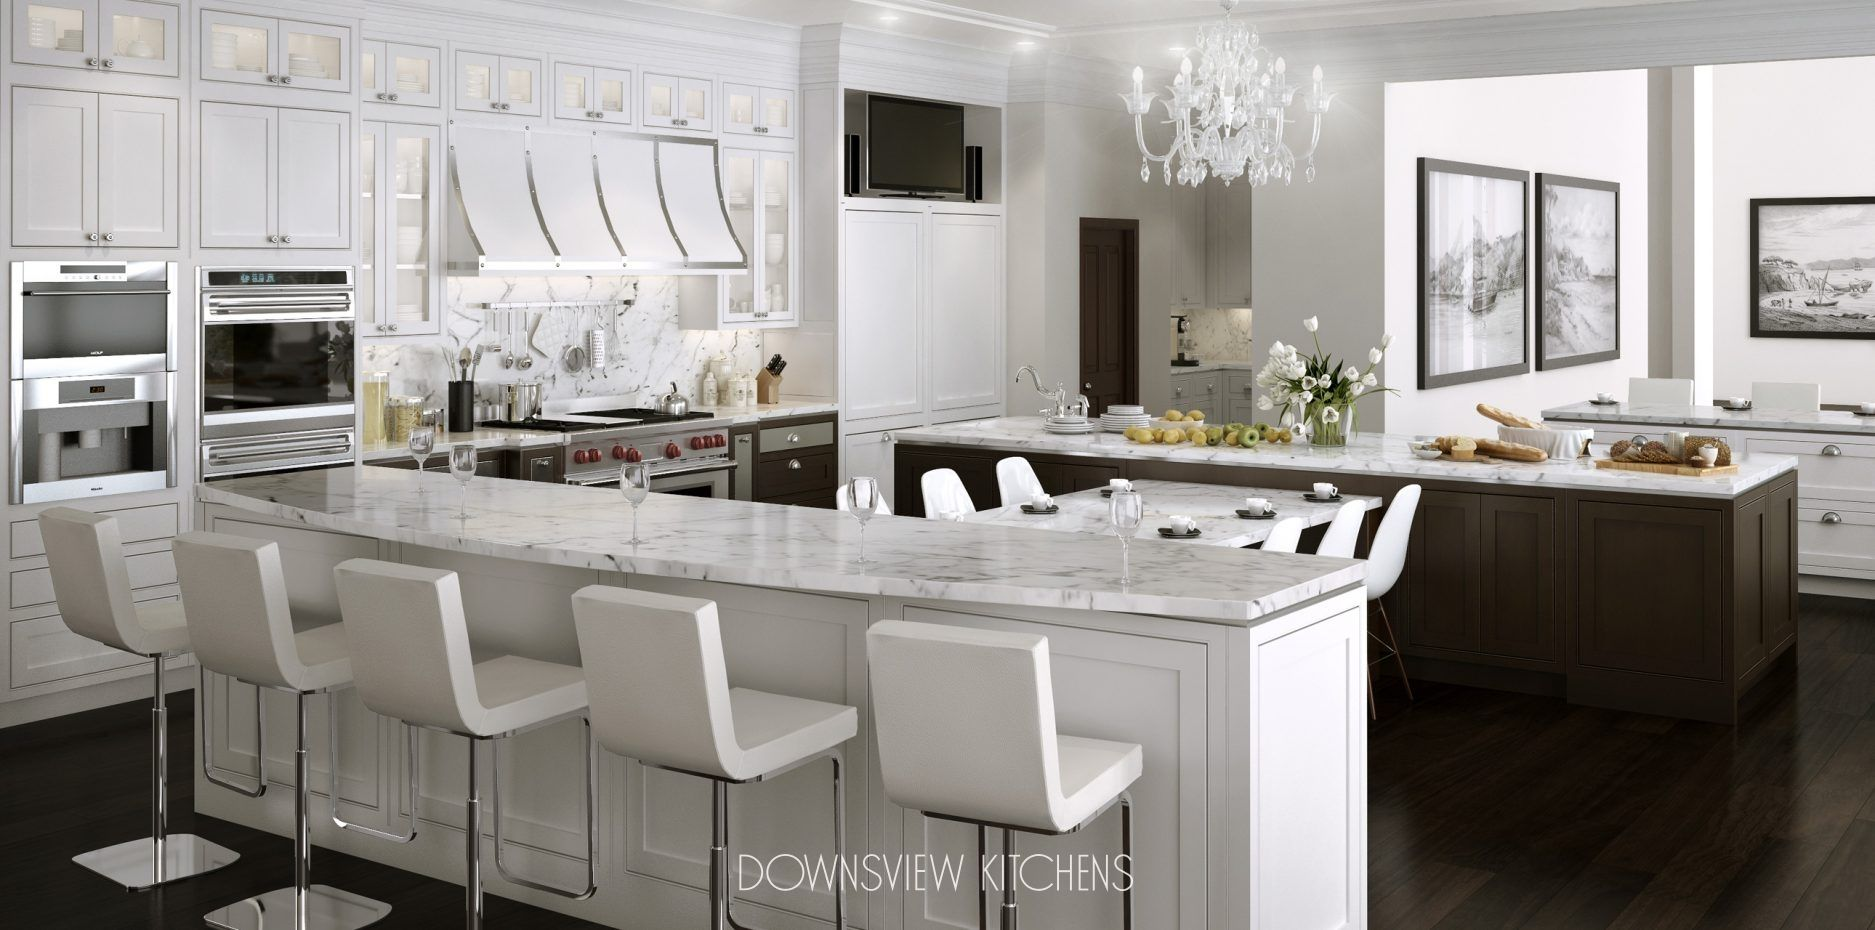 Timeless elegance downsview kitchens and fine custom cabinetry